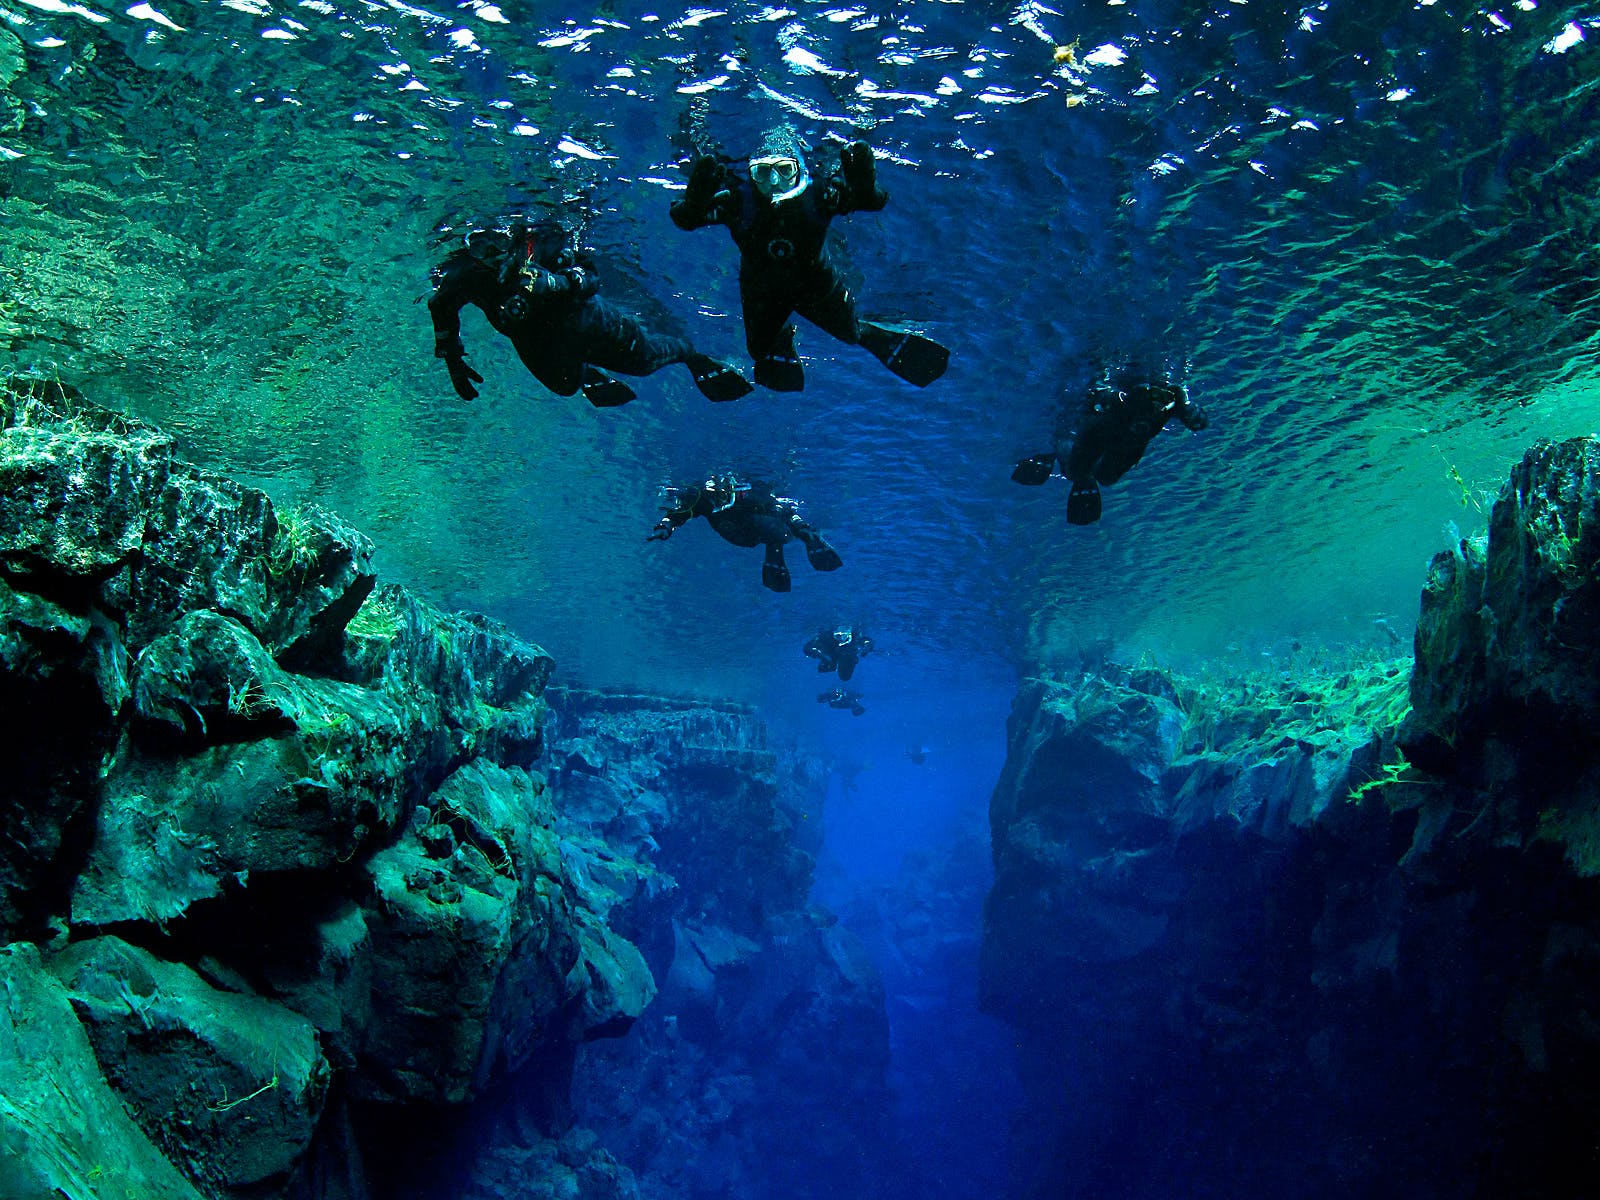 3 in 1 Bundled Discount Activity Tours with Snorkeling, Ice Caving & Glacier Hiking - day 1